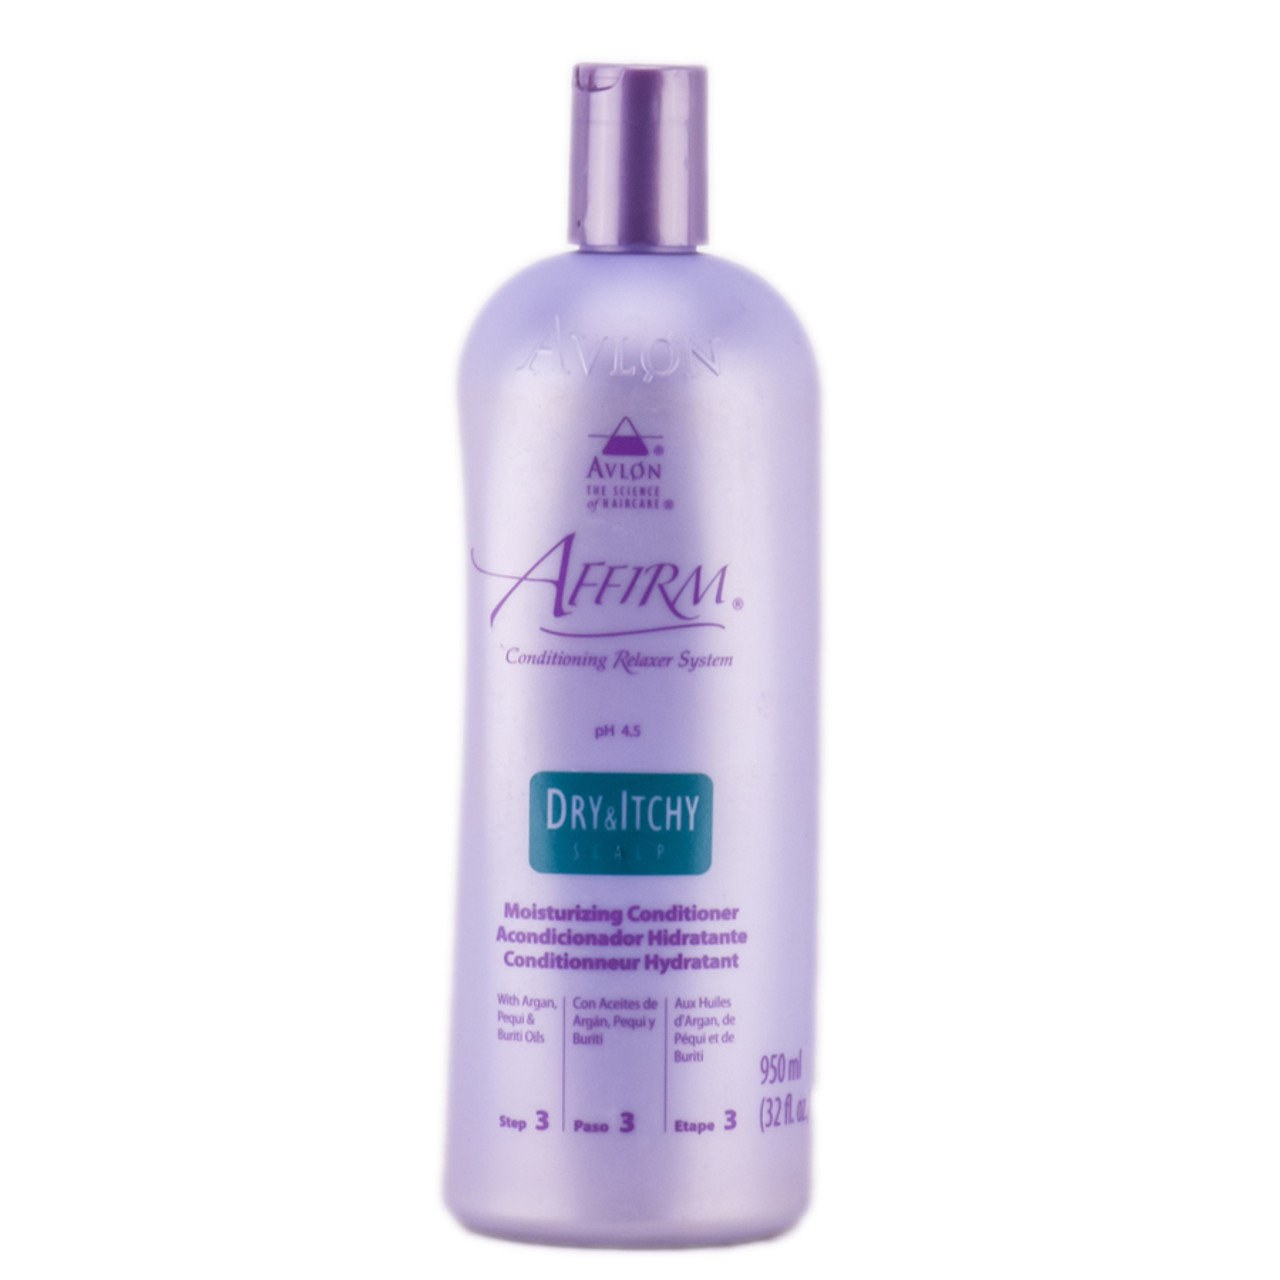 Avlon Affirm Dry and Itchy Moisturizing Conditioner ...